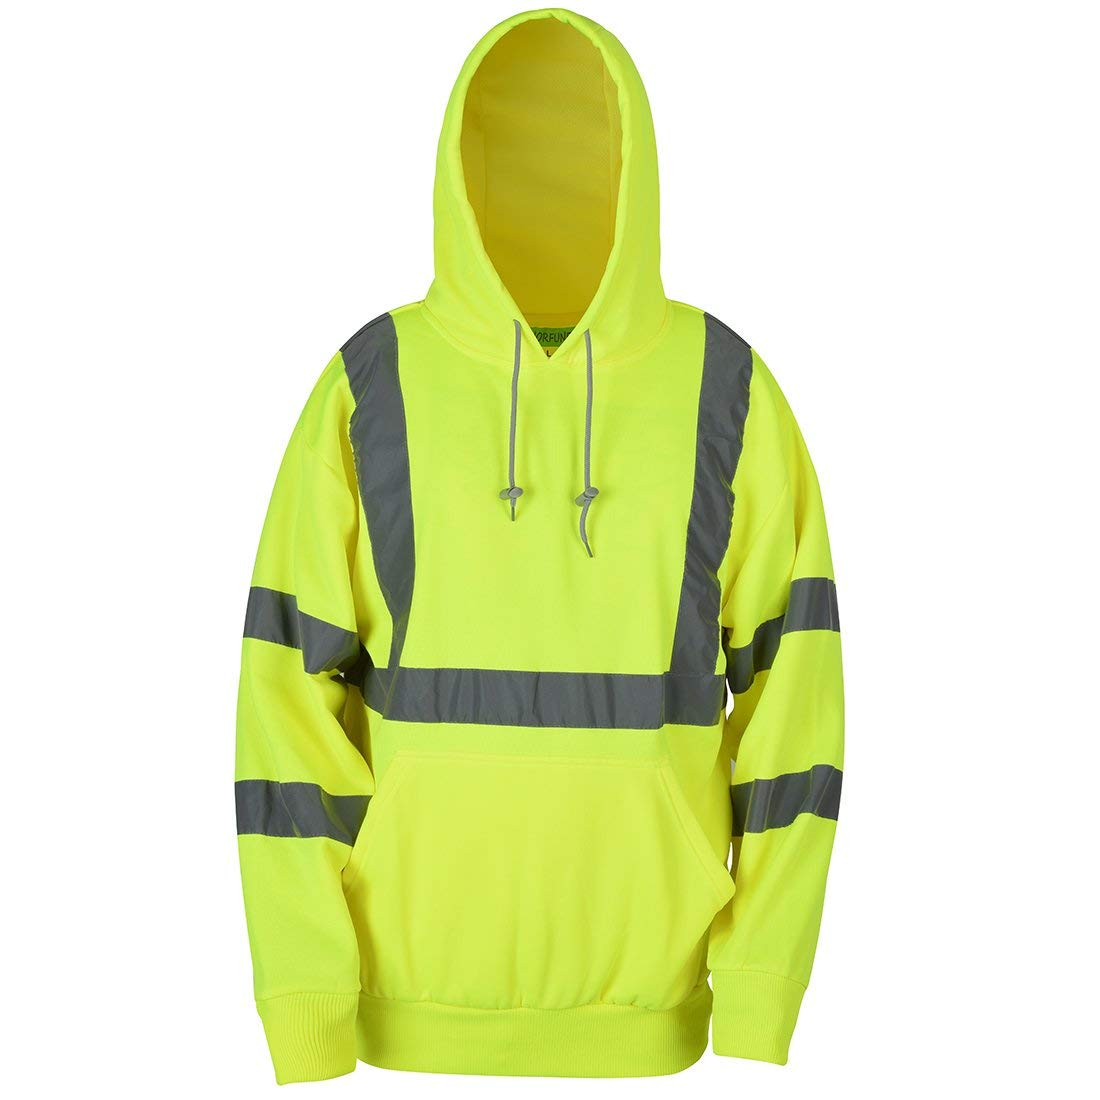 SHORFUNE High Visibility Sweatshirt with Pocket and Reflective Strips, Yellow, Meets ANSI/ISEA Standards, XL